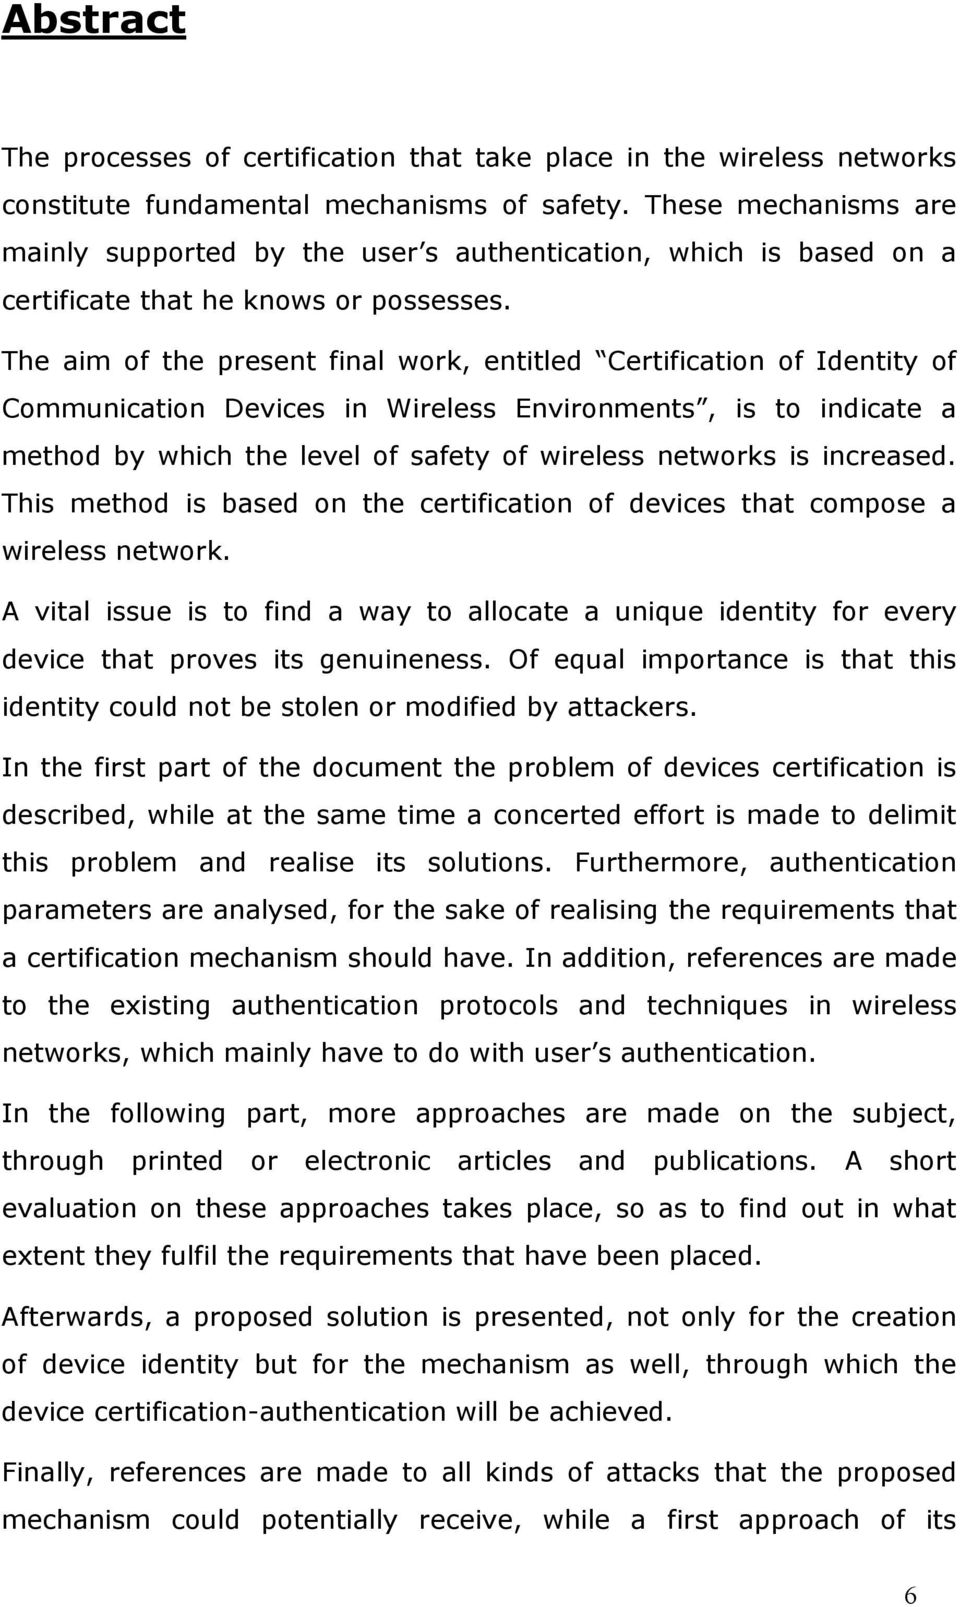 The aim of the present final work, entitled Certification of Identity of Communication Devices in Wireless Environments, is to indicate a method by which the level of safety of wireless networks is